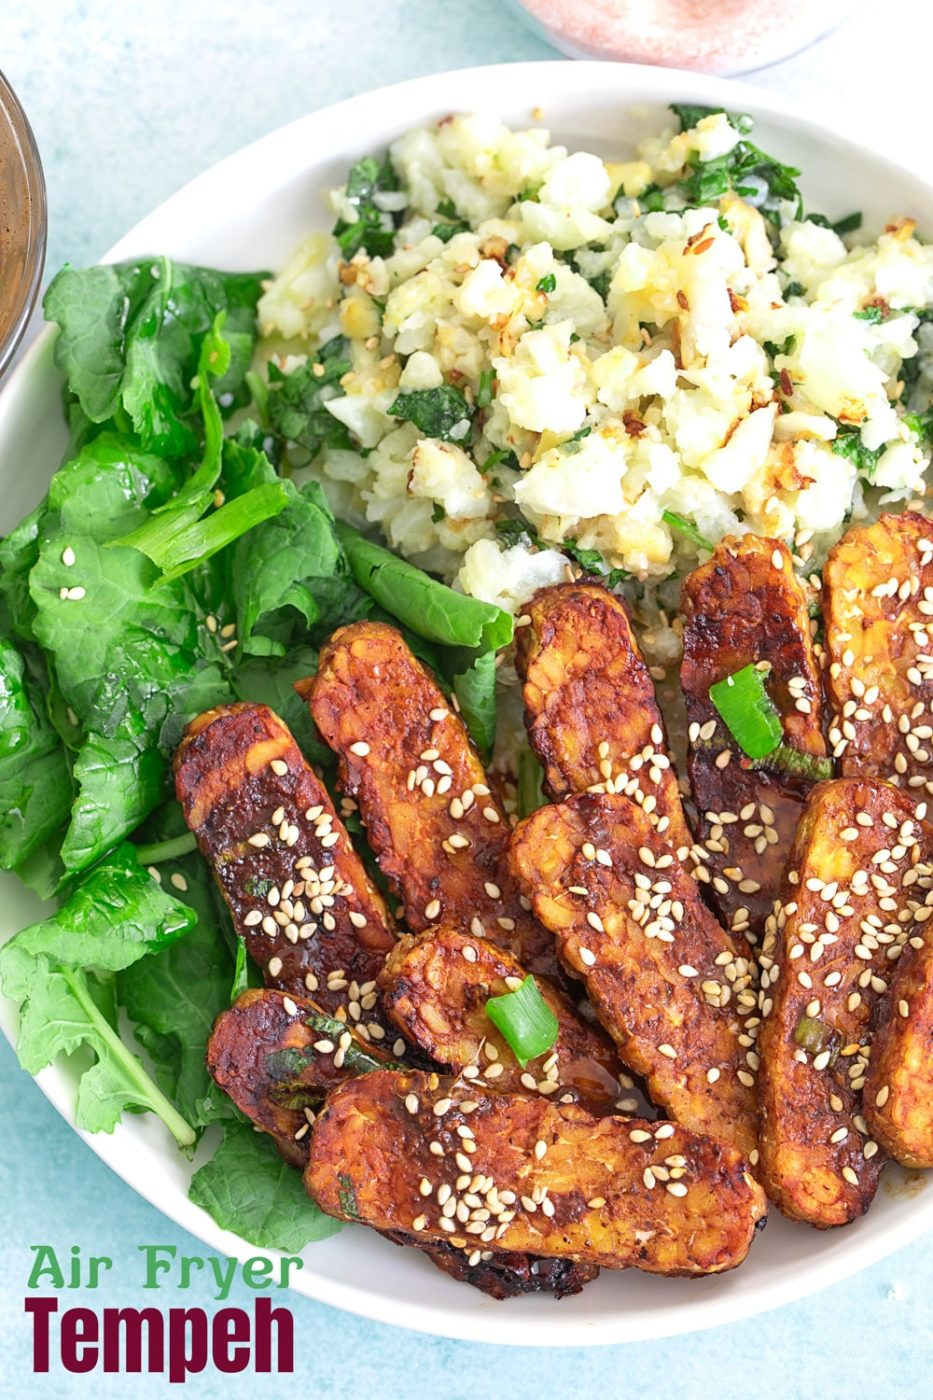 Top closeup view of tempeh in a bowl with sesame seeds for garnish